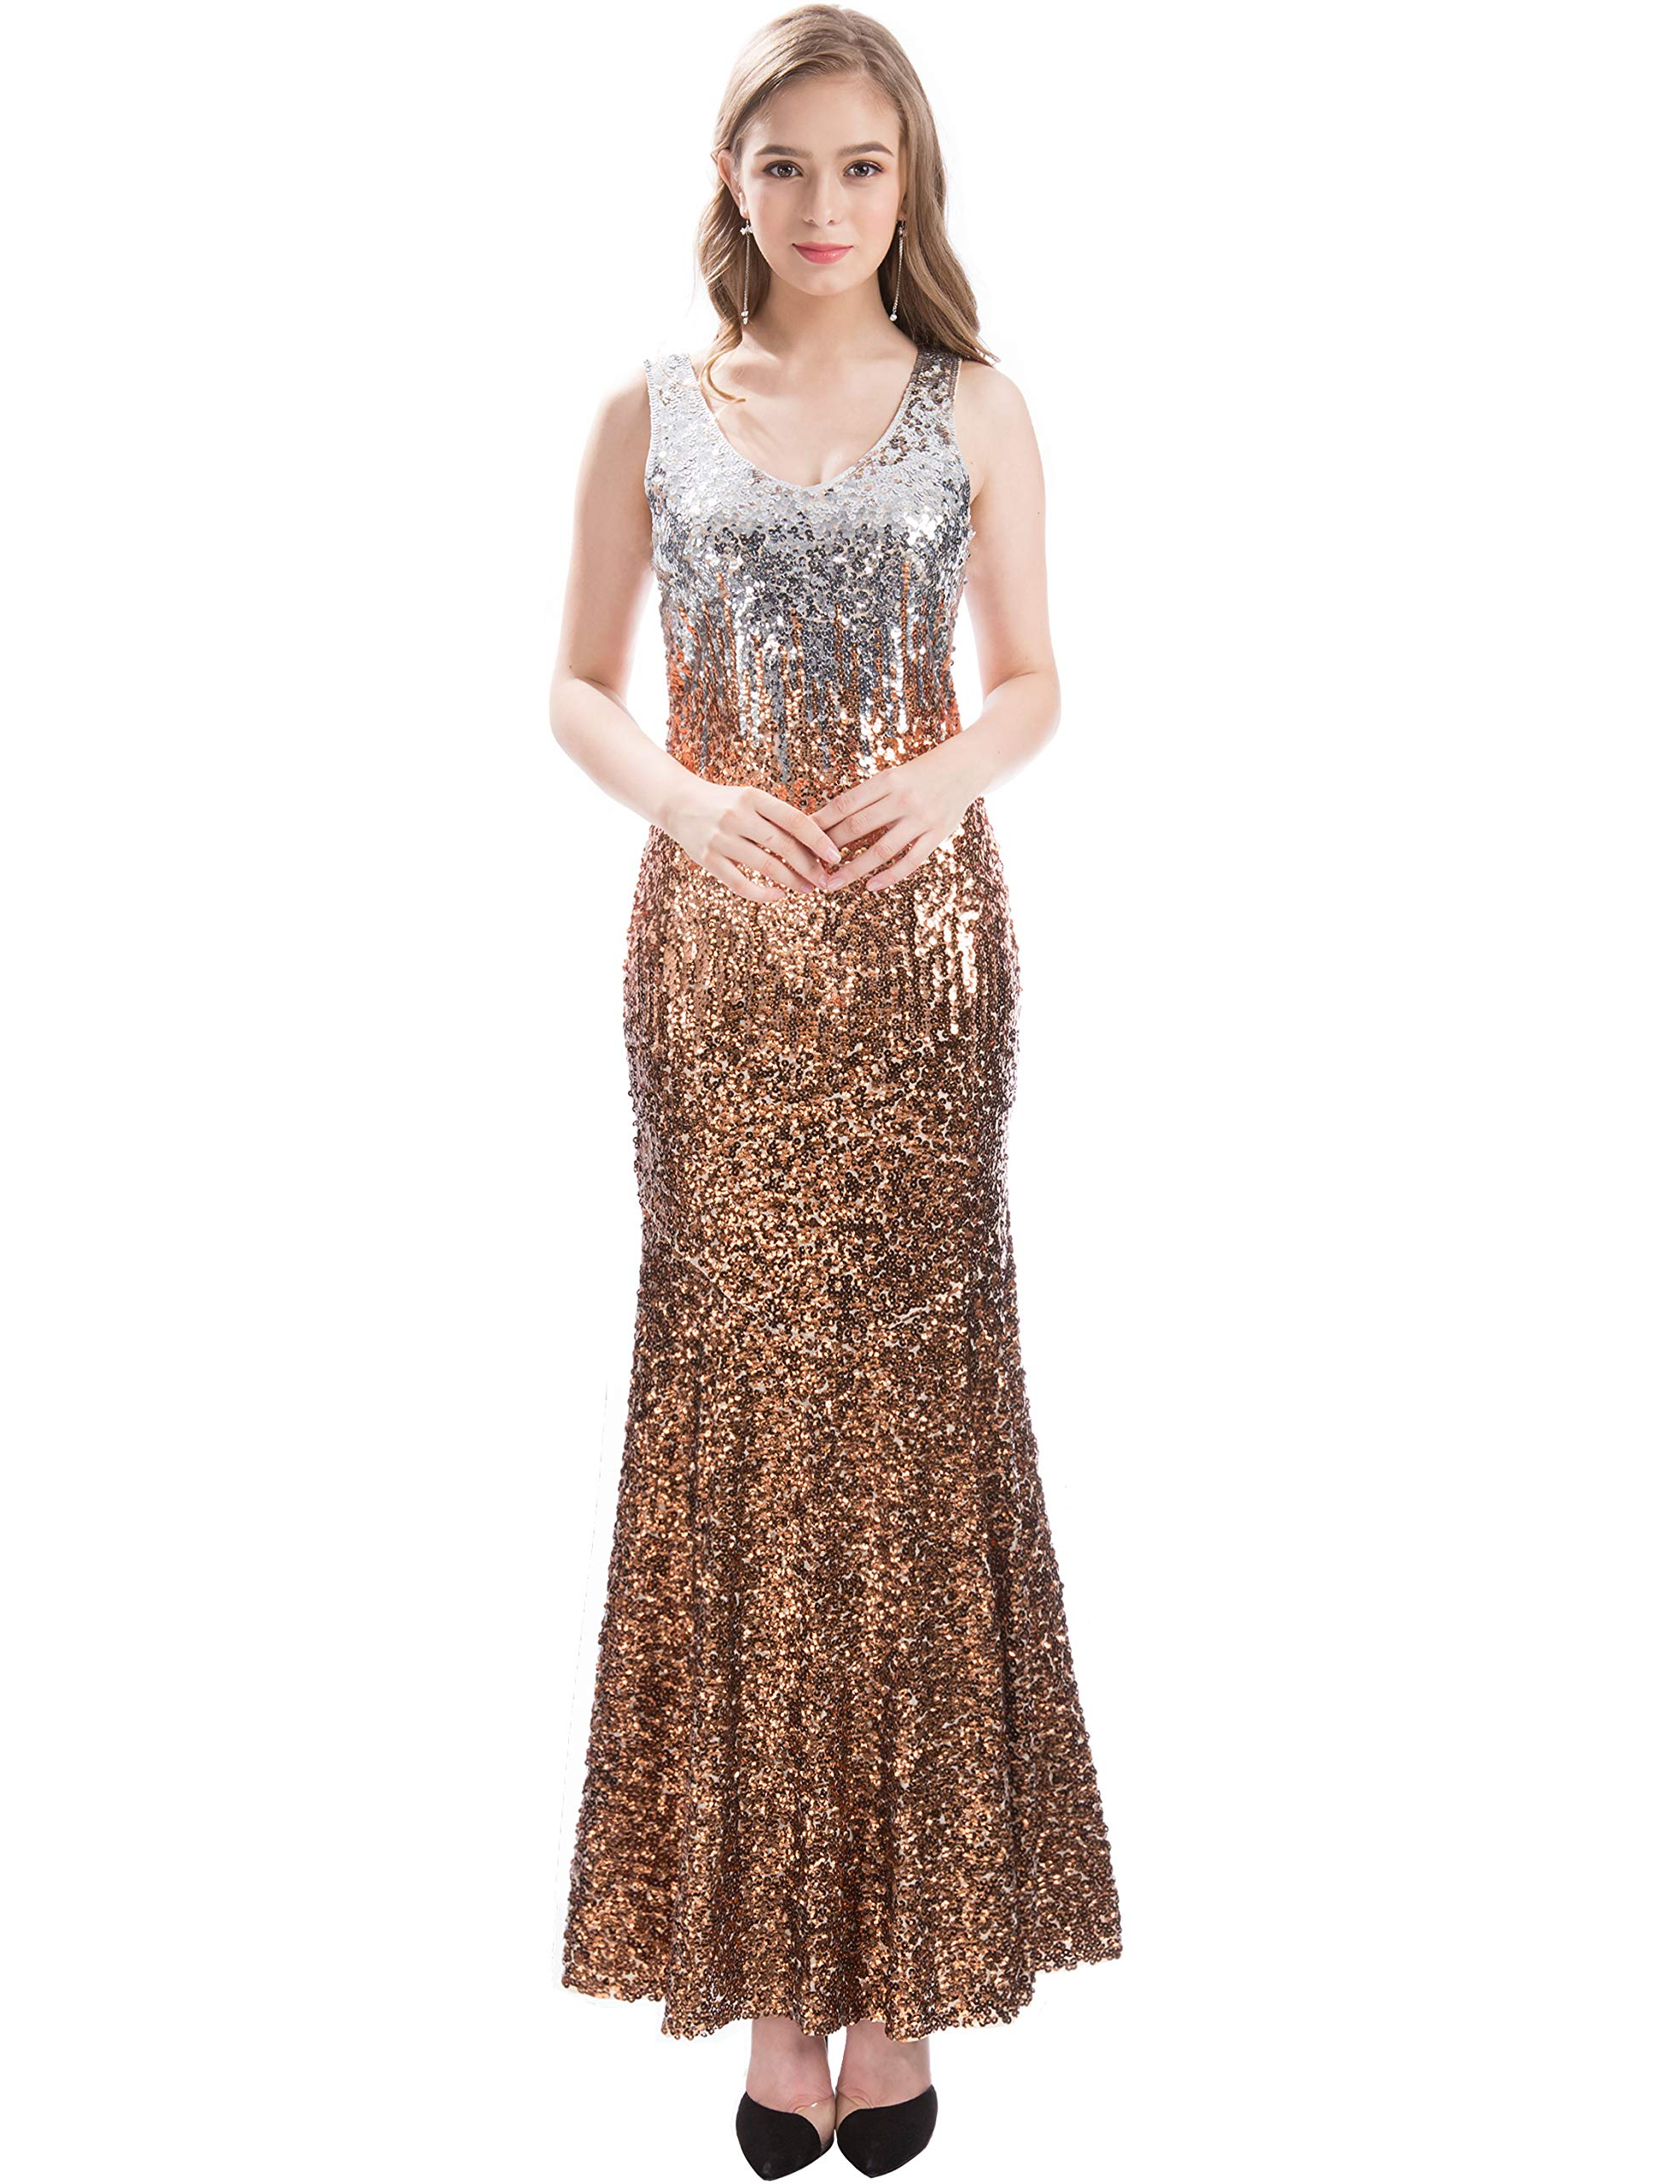 MANER Women V Neck Sequin Long Dress Sleeveless Evening Prom Mermaid Gowns (Silver/Rose Gold/Brown, XL) by MANER